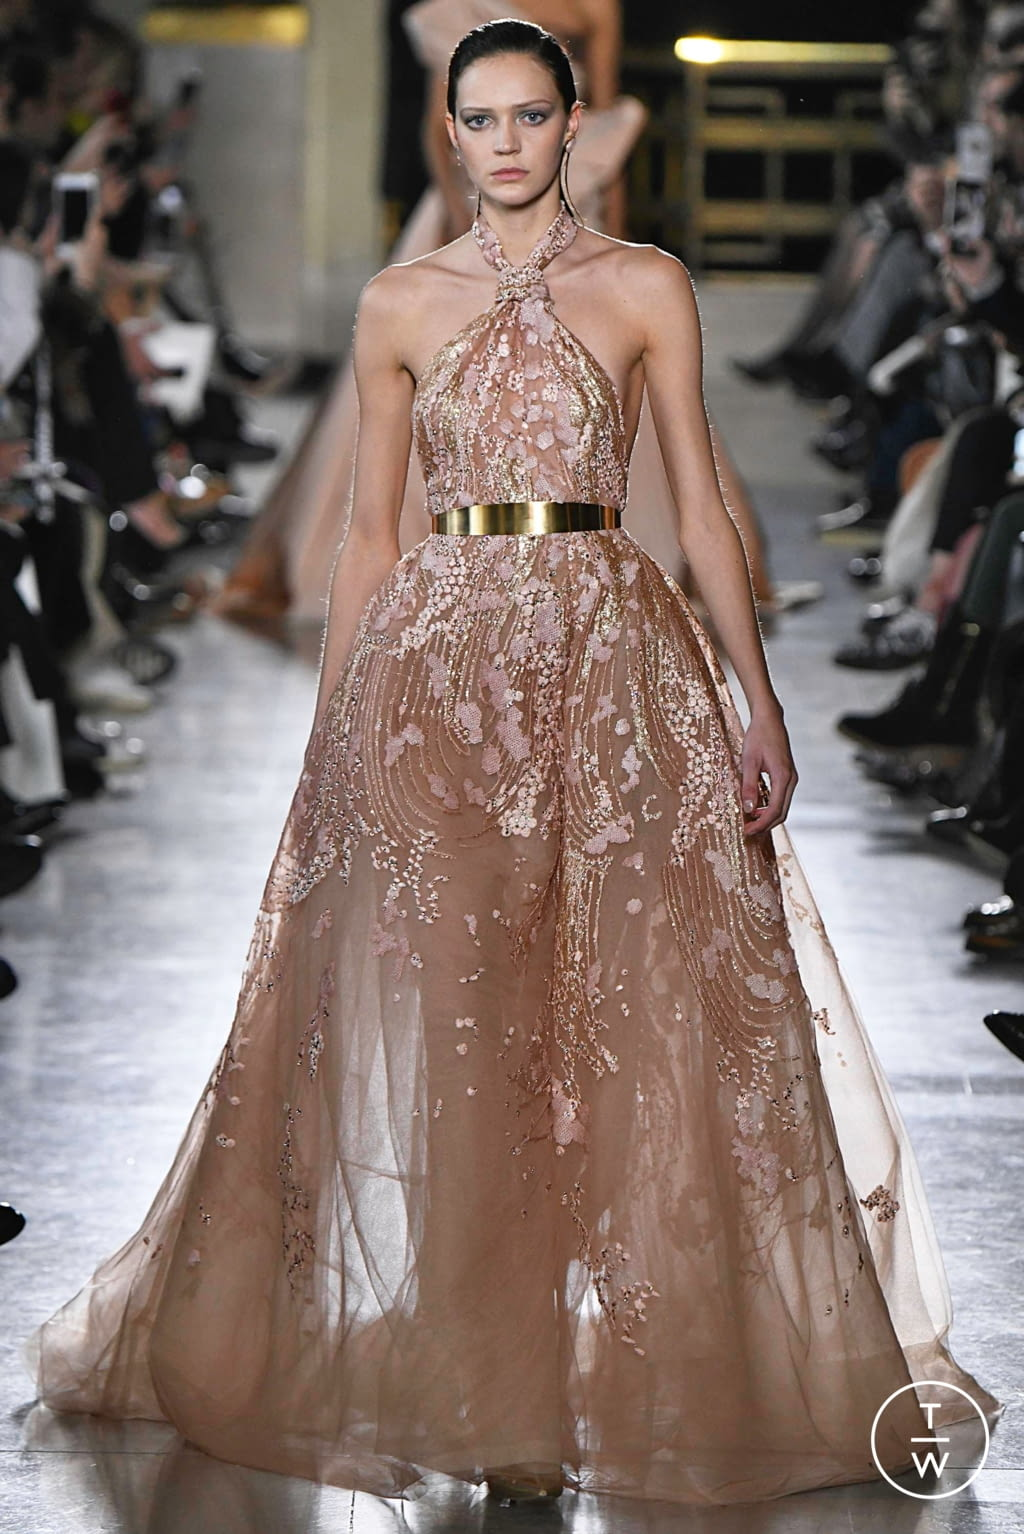 Fashion Week Paris Spring/Summer 2019 look 12 from the Elie Saab collection 高级定制